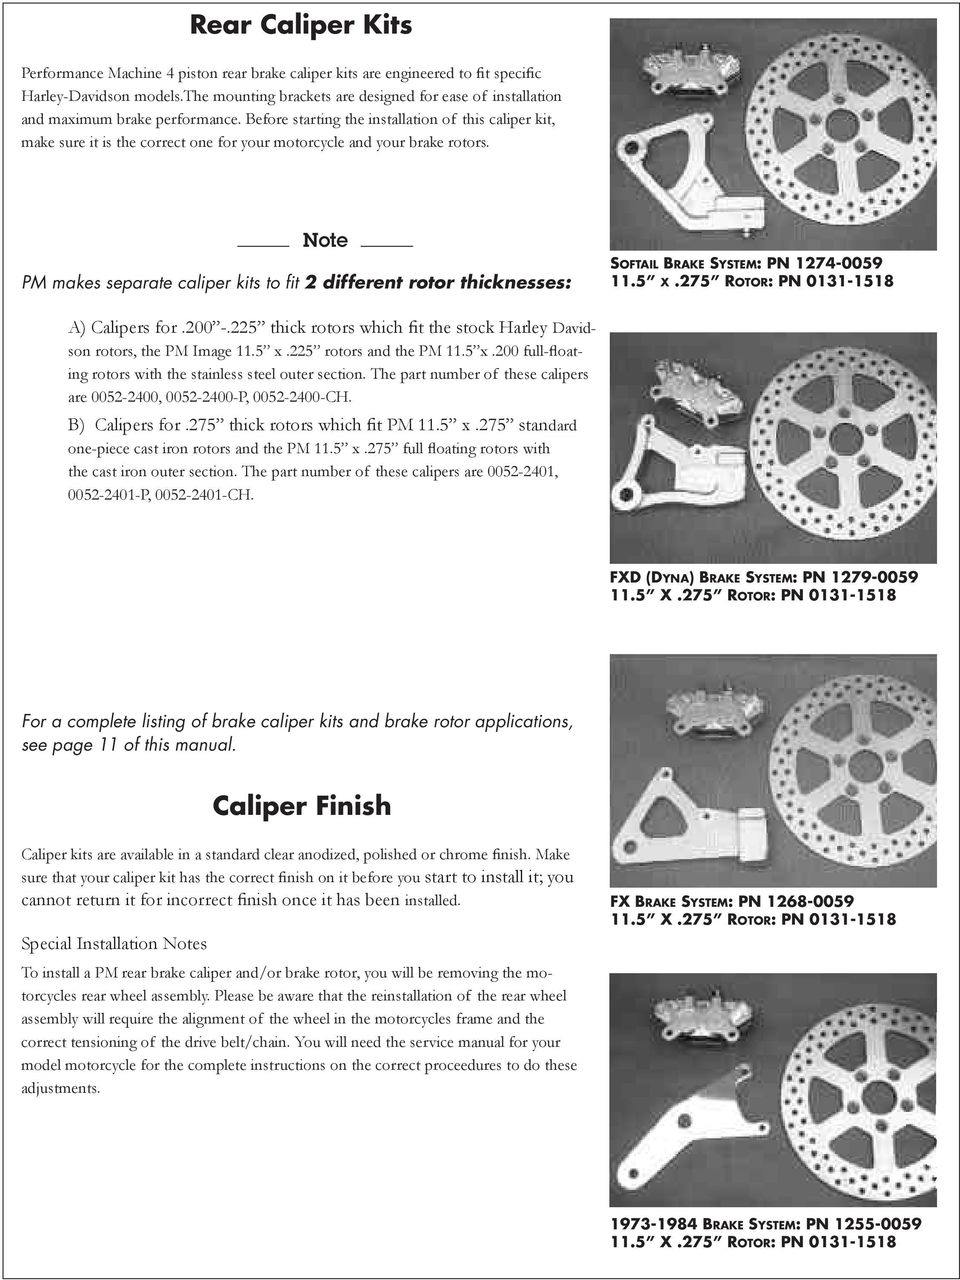 4 Piston Brake Calipers And Rotors Pdf Caption Diagram Of The Basic Front Disc Setup Arotor B Before Starting Installation This Caliper Kit Make Sure It Is Correct One